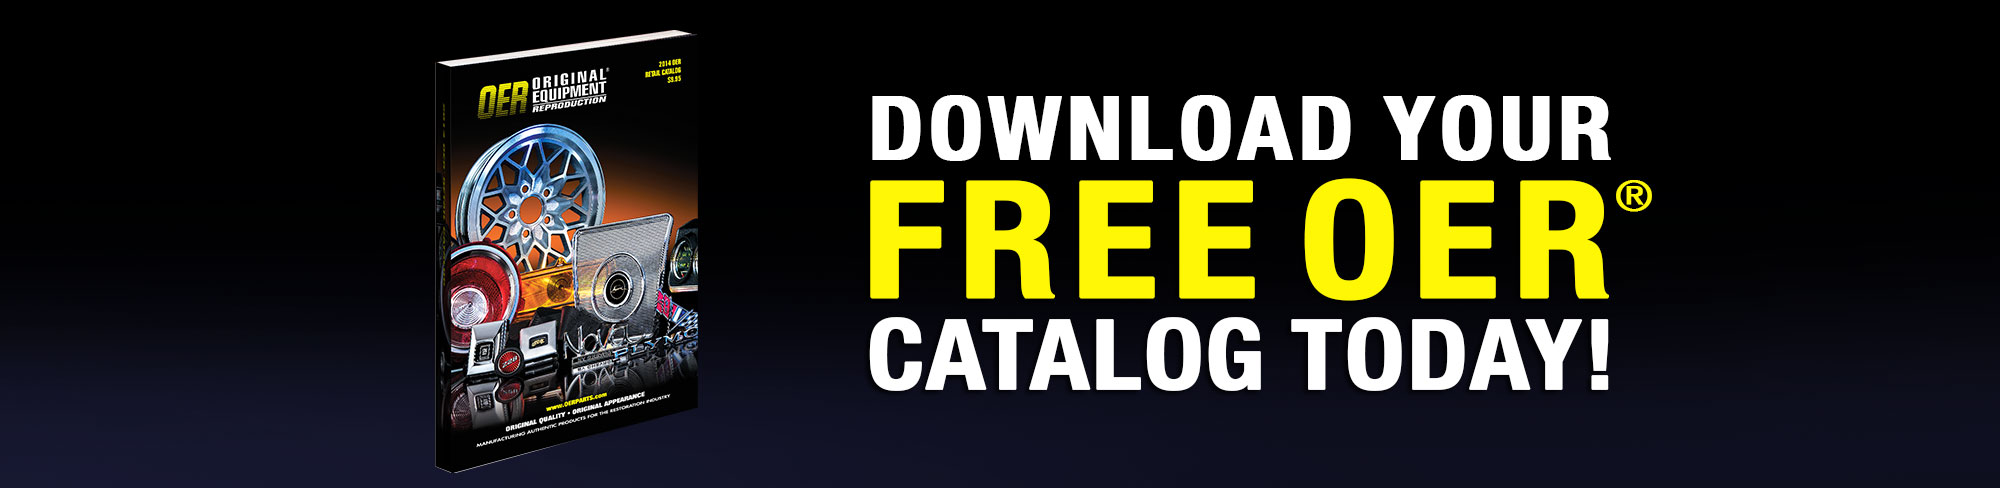 Download Your FREE OER Catalog Today!